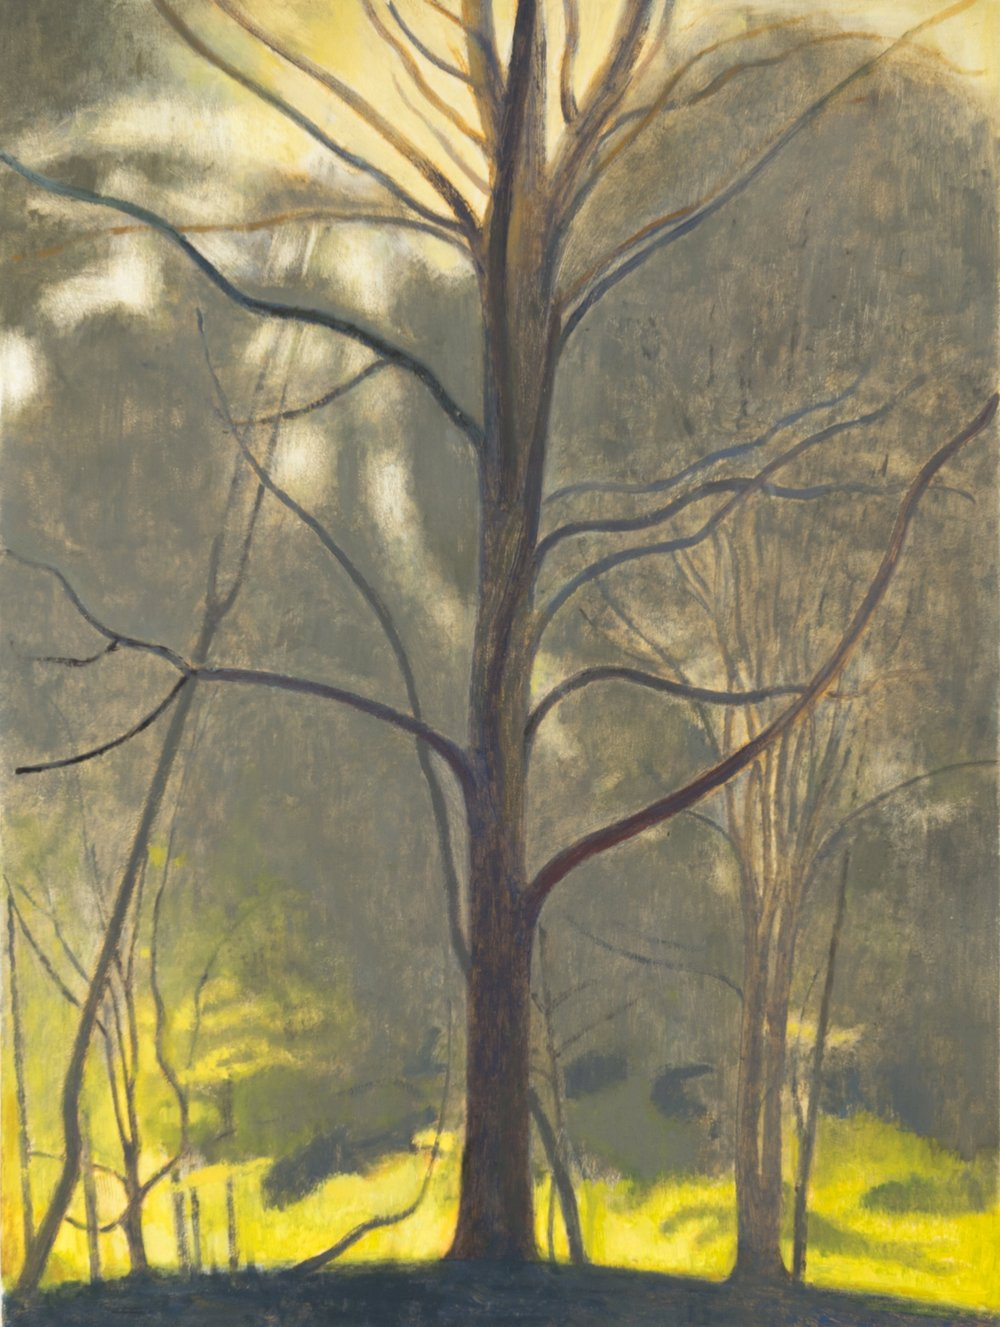 "Tree  , 2017, oil on panel, 12 x 9 inches,      Upcoming Exhibition    Upland     January 6 - February 10, 2018    Opening Reception - Saturday, January 6, 3-6 pm       Elizabeth Harris Gallery    529 West 20th Street    New York, NY 10011    212.463.9666       press release                                    Elizabeth Harris Gallery is pleased to present Upland, an exhibition of new work by Ron Milewicz. This will be his fourth solo exhibition with the gallery. It will feature paintings and drawings based on the rural landscape of upstate New York.  For two years Milewicz made drawings in the woods, approaching nature simply and directly with only pencil and paper. In these intimately scaled portrayals of trees, meadows, ponds, and skies, the silvery graphite is seemingly soaked into the soft cotton paper. Critic David Ebony writes in his exhibition essay: ""Milewicz trees are no ordinary specimens . . . the trees appear as spectral presences. Nurtured by ethereal light, crystalline air, and vaporous clouds of moisture—conveyed by finely nuanced tonal shifts—these ancient, ancestral trees possess firm roots and an insistent verticality."" Milewicz's absorption into nature is evident, and the drawings are suffused with solitude.  Milewicz began making paintings of his drawings of landscapes. Relying on memories that are as much emotional as visual, Milewicz's paintings are faithful to both interior and exterior experience. They regard nature as a spiritual wellspring, a view Milewicz shares with artists ranging from the Chinese scholar-painter to the American Luminist. His works assert the overwhelming truth of Nature's elemental and mystical power.  Reverence, however, is not confused with nostalgia. Conscious of the contemporary existential threat to Nature, Milewicz's depictions of landscape can be seen as elegies for the landscape itself. They present Nature's force along with its vulnerability, silently marveling at the central miracle of being while admitting the miraculous fact of inevitable dissolution.      At the core of these works is their quiet refusal to restrict themselves to a single vantage point - physical, emotional or philosophical. In Milewicz's landscapes, as in his previous cityscapes and still-lifes, multiple subjects - personal, universal and appropriately un-nameable - underlie the images, giving them their beguiling mystery and presence. As Ebony concludes in his essay, ""In Milewicz's metaphorical picture-language, trees resign themselves to command a terrestrial domain, yet persistently strive to attain a heavenly realm."" Ron Milewicz was born in 1963 in Brooklyn, New York. He studied biology and art history at Cornell University (1979-83), received a master's degree from Columbia University Graduate School of Architecture (1983-86), and attended the New York Studio School (1990-1994) where he has taught drawing and painting for a decade and a half. He has exhibited nationally and internationally, has been widely reviewed, and is represented in numerous private and public collections. He lives and works in Queens, New York, and Gallatin, New York.  The gallery is located at 529 West 20th Street, 6th floor, and is open Tuesday – Saturday, 11-6.  A reception for the artist will take place on Saturday, January 6 from 3-6 pm.   For further information contact Miles Manning at 212-463-9666"